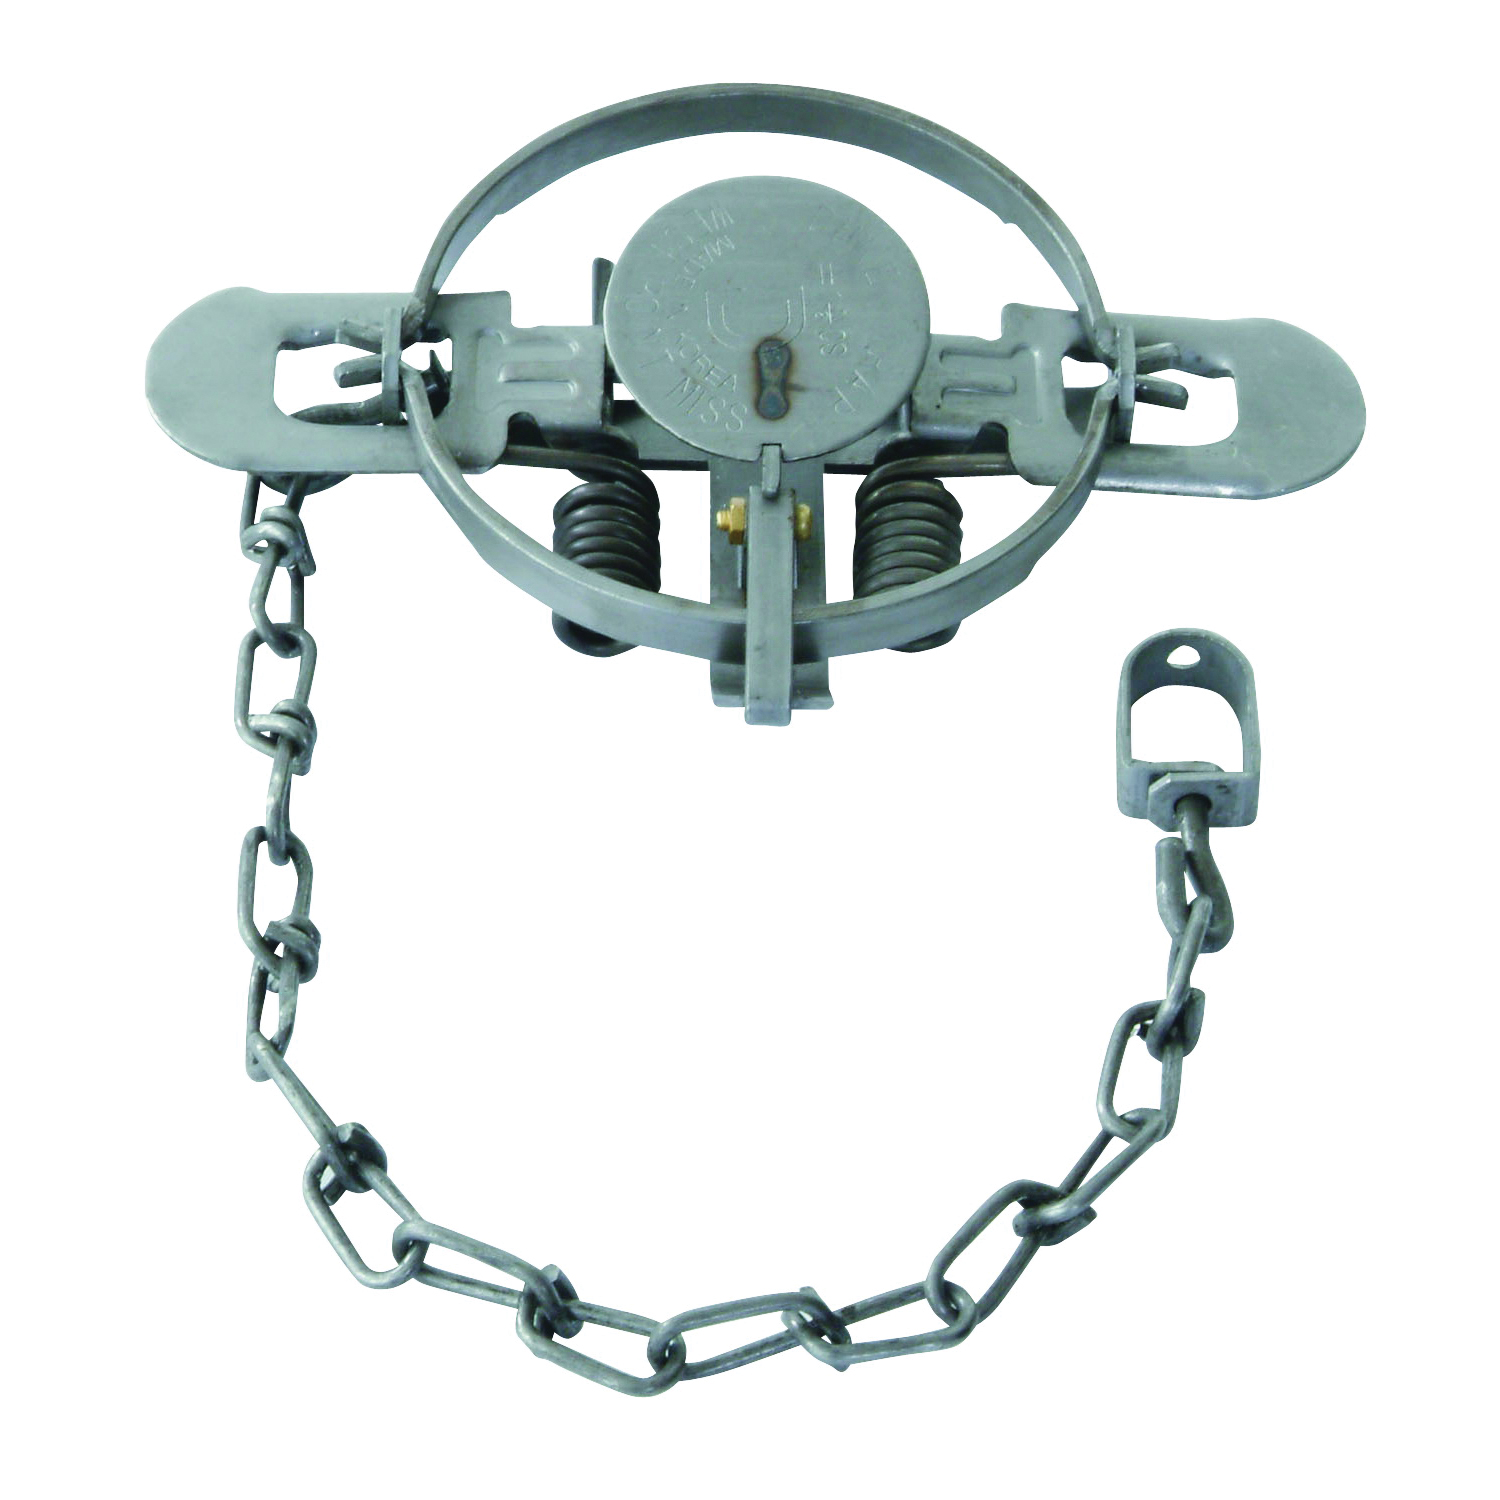 Picture of DUKE TRAPS 0470 Coil Spring Trap, Spring Locking